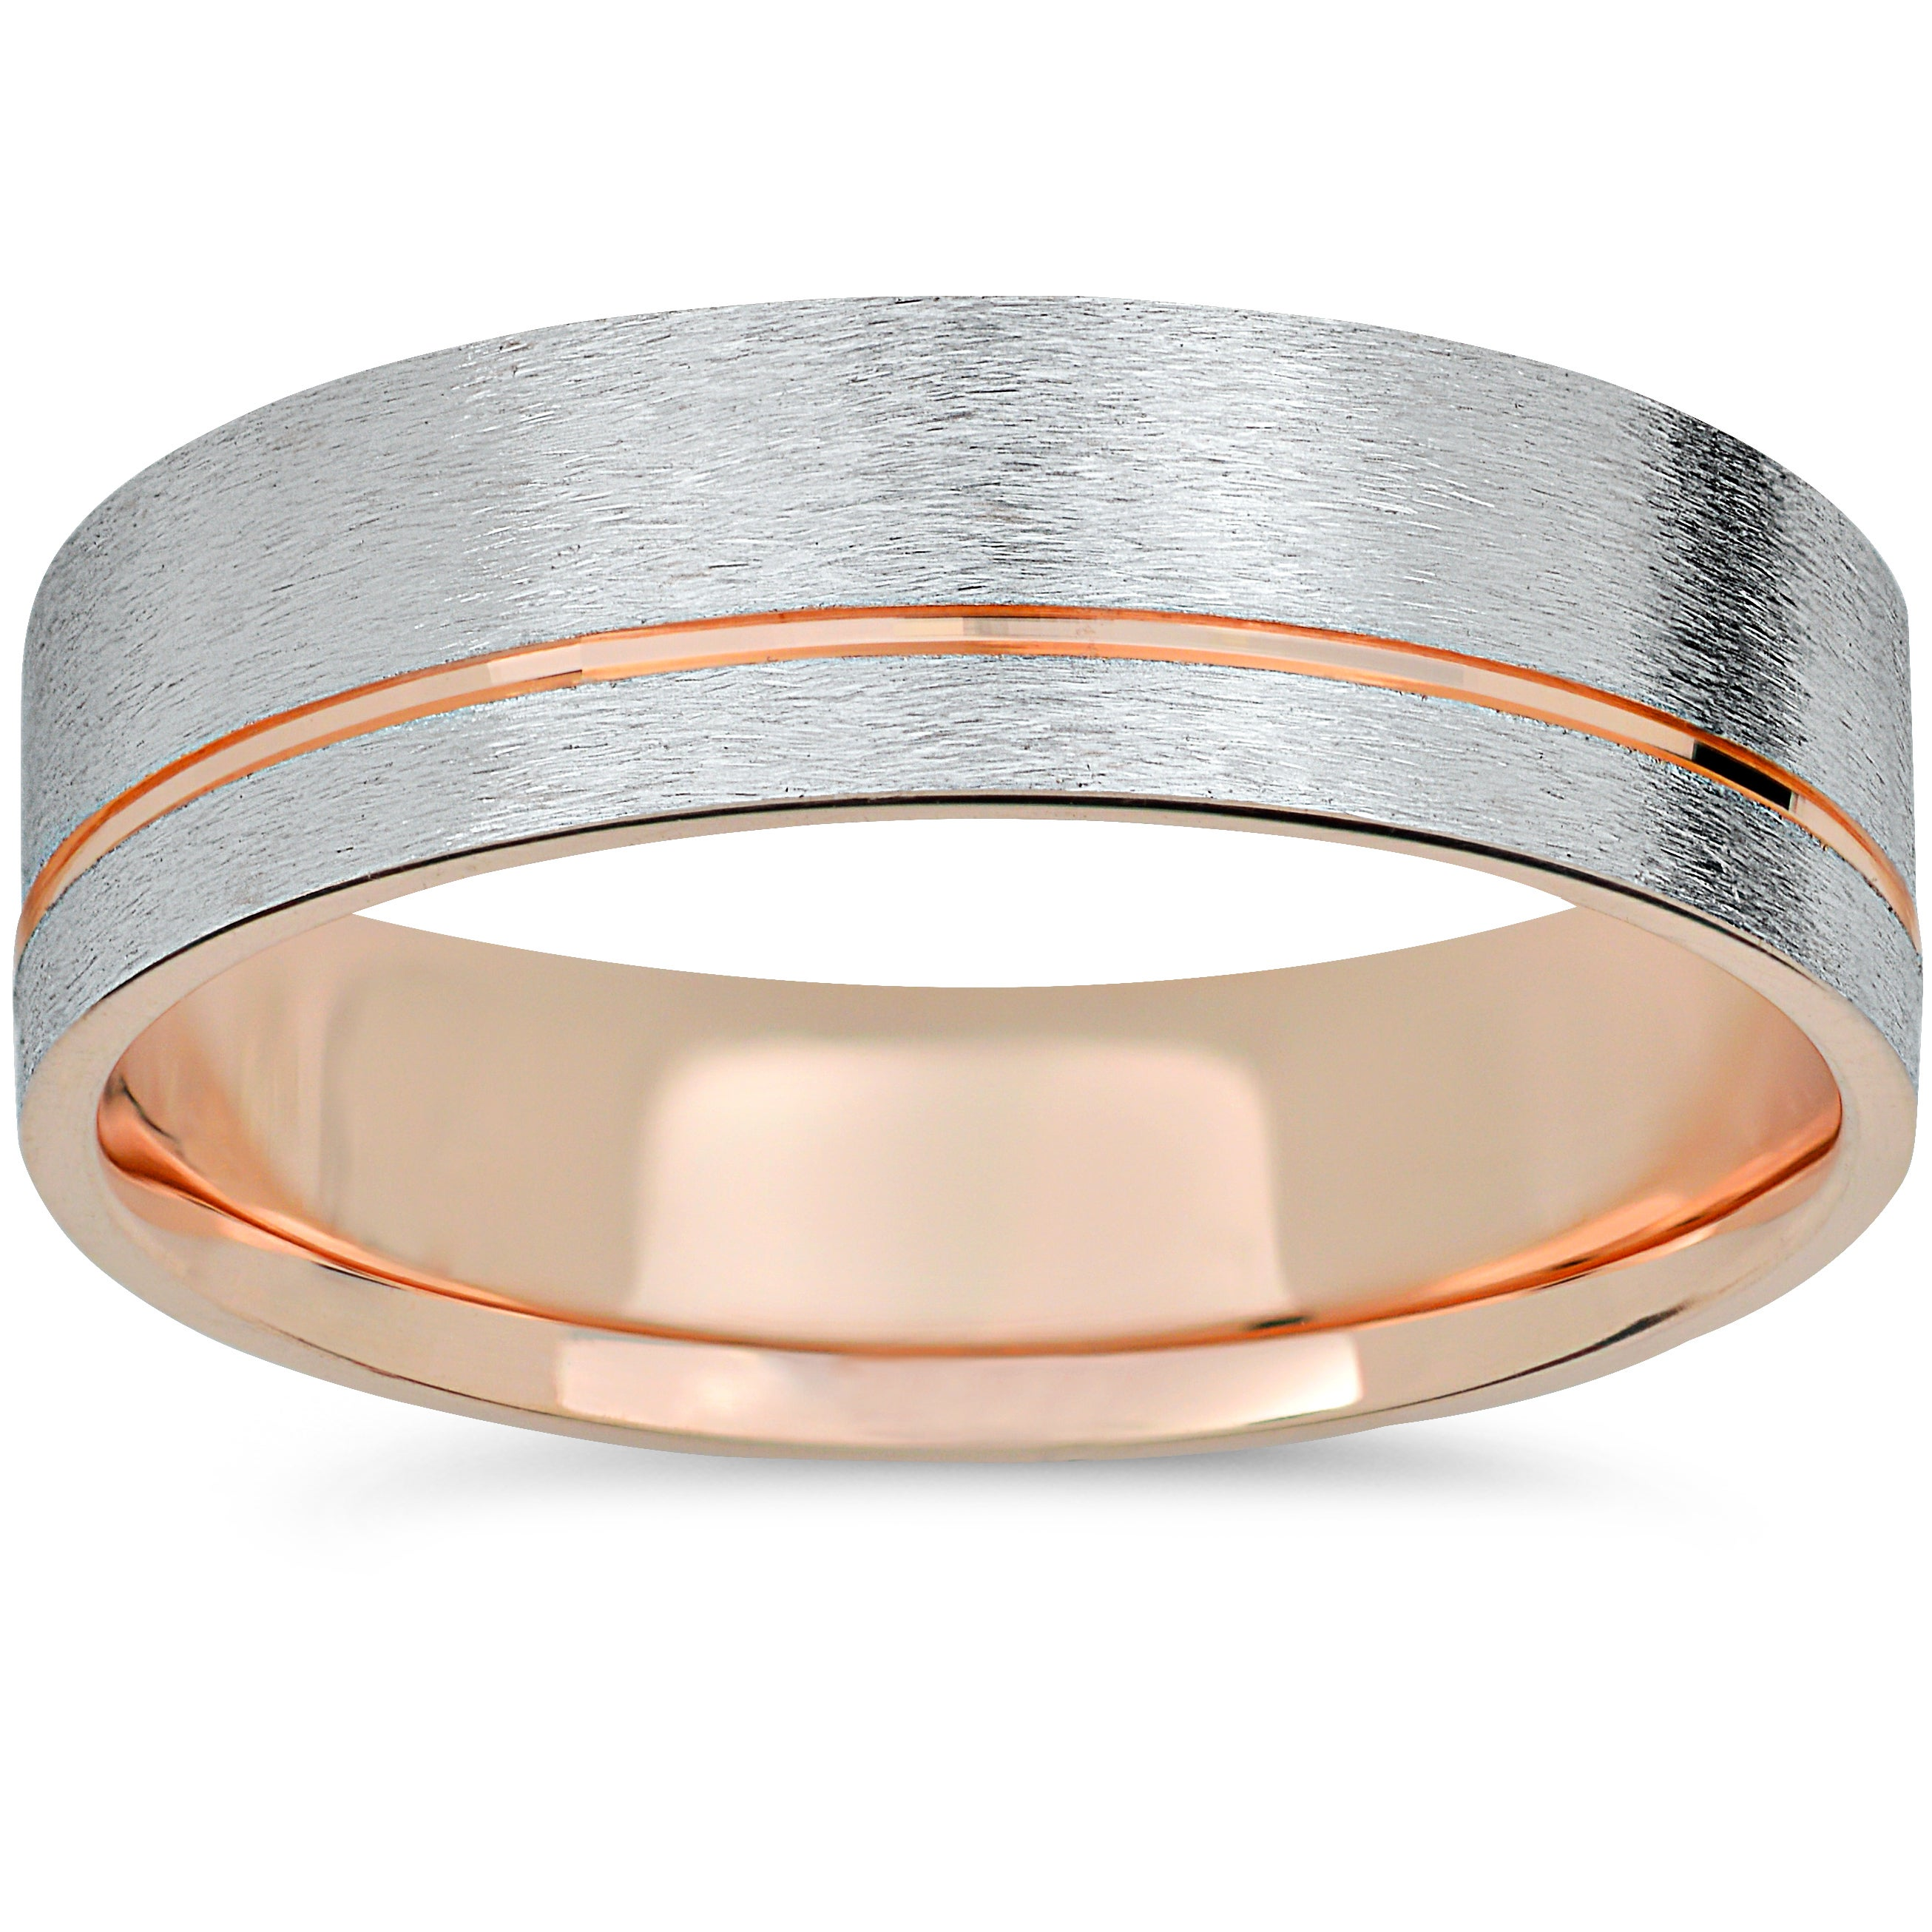 for rose set austin walmart stainless of plain photo tanga plainding band women solid inspirations bands polished gold pictures size full in steel tx mirrored inspire wedding